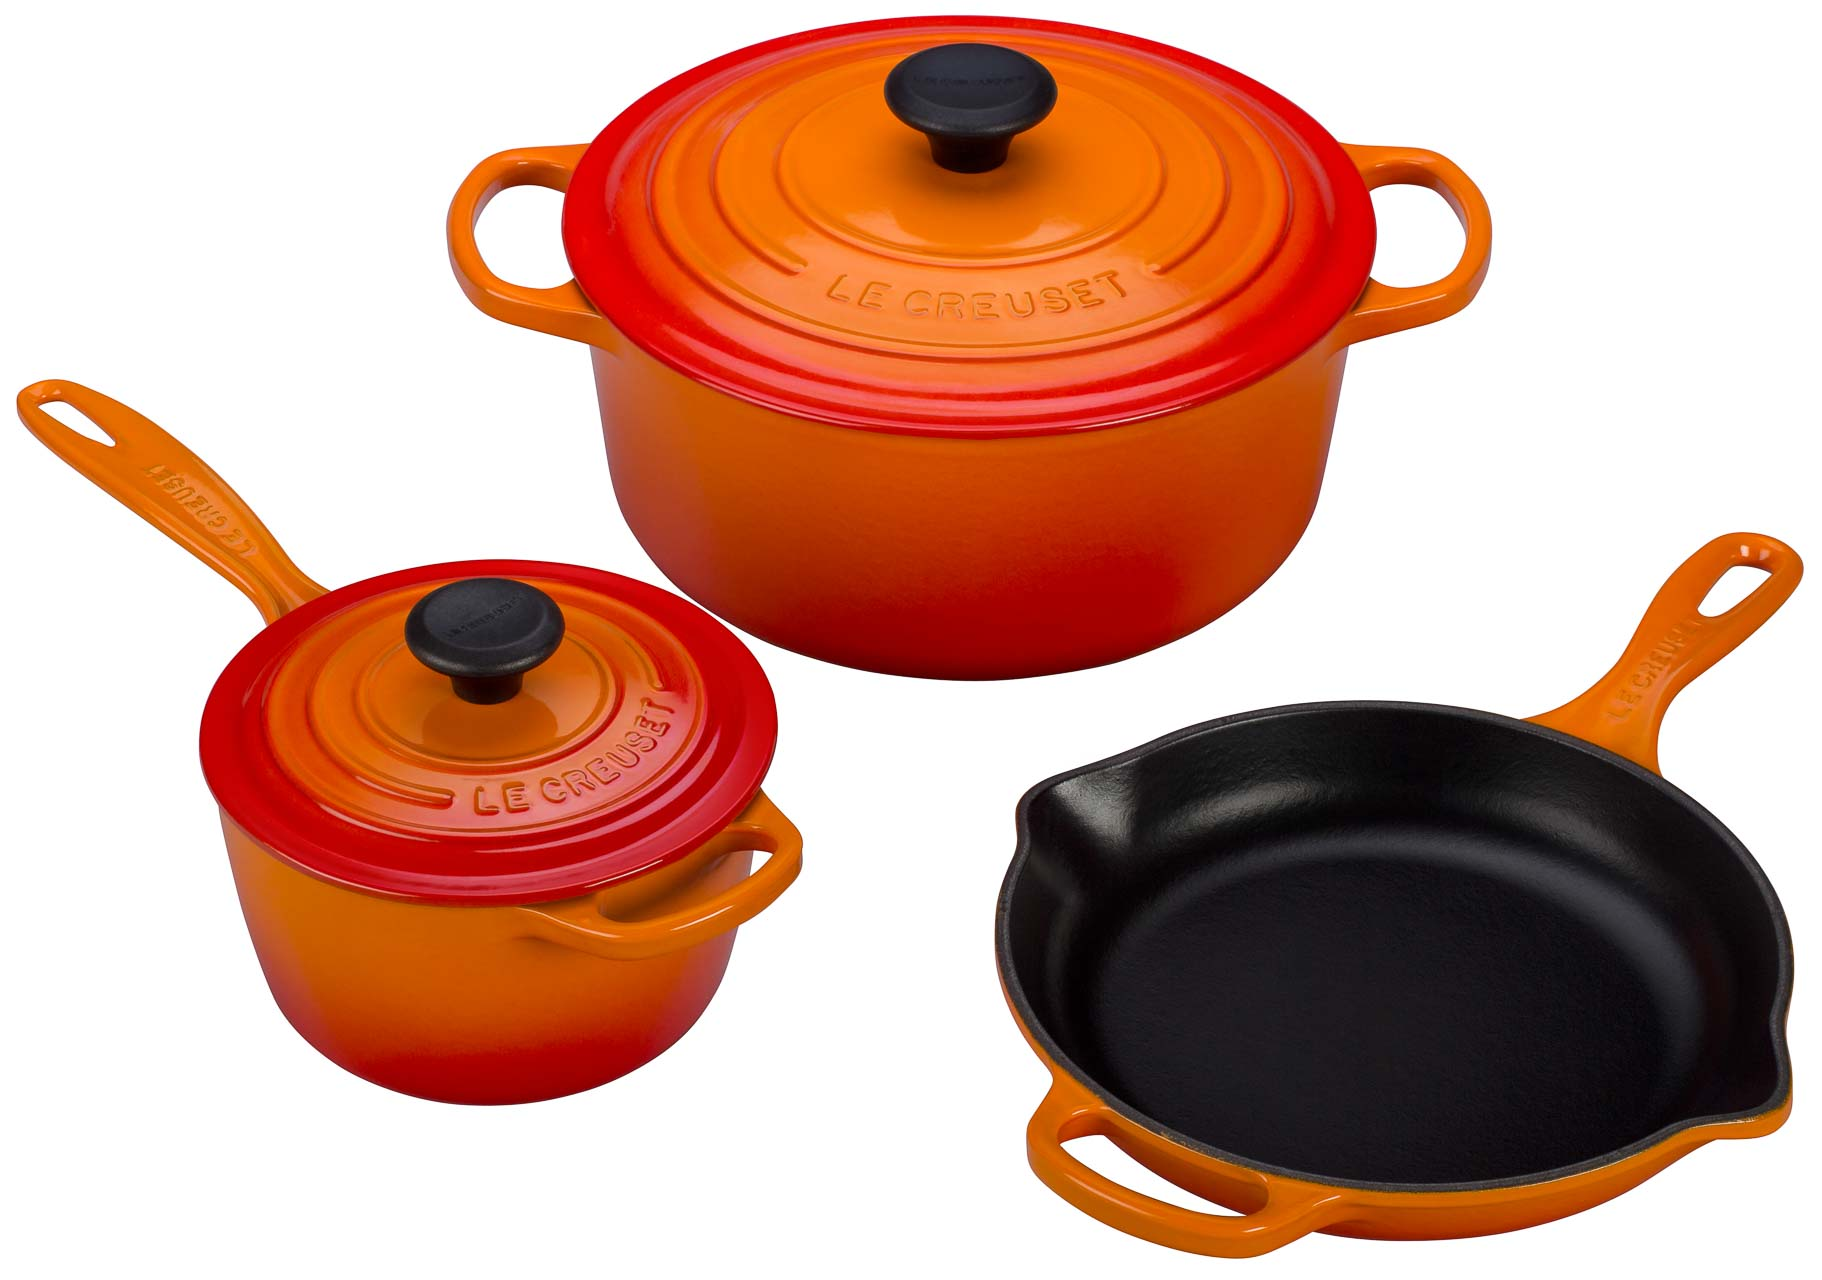 Le Creuset giveaway to celebrate the release of my newest book, L'appart!